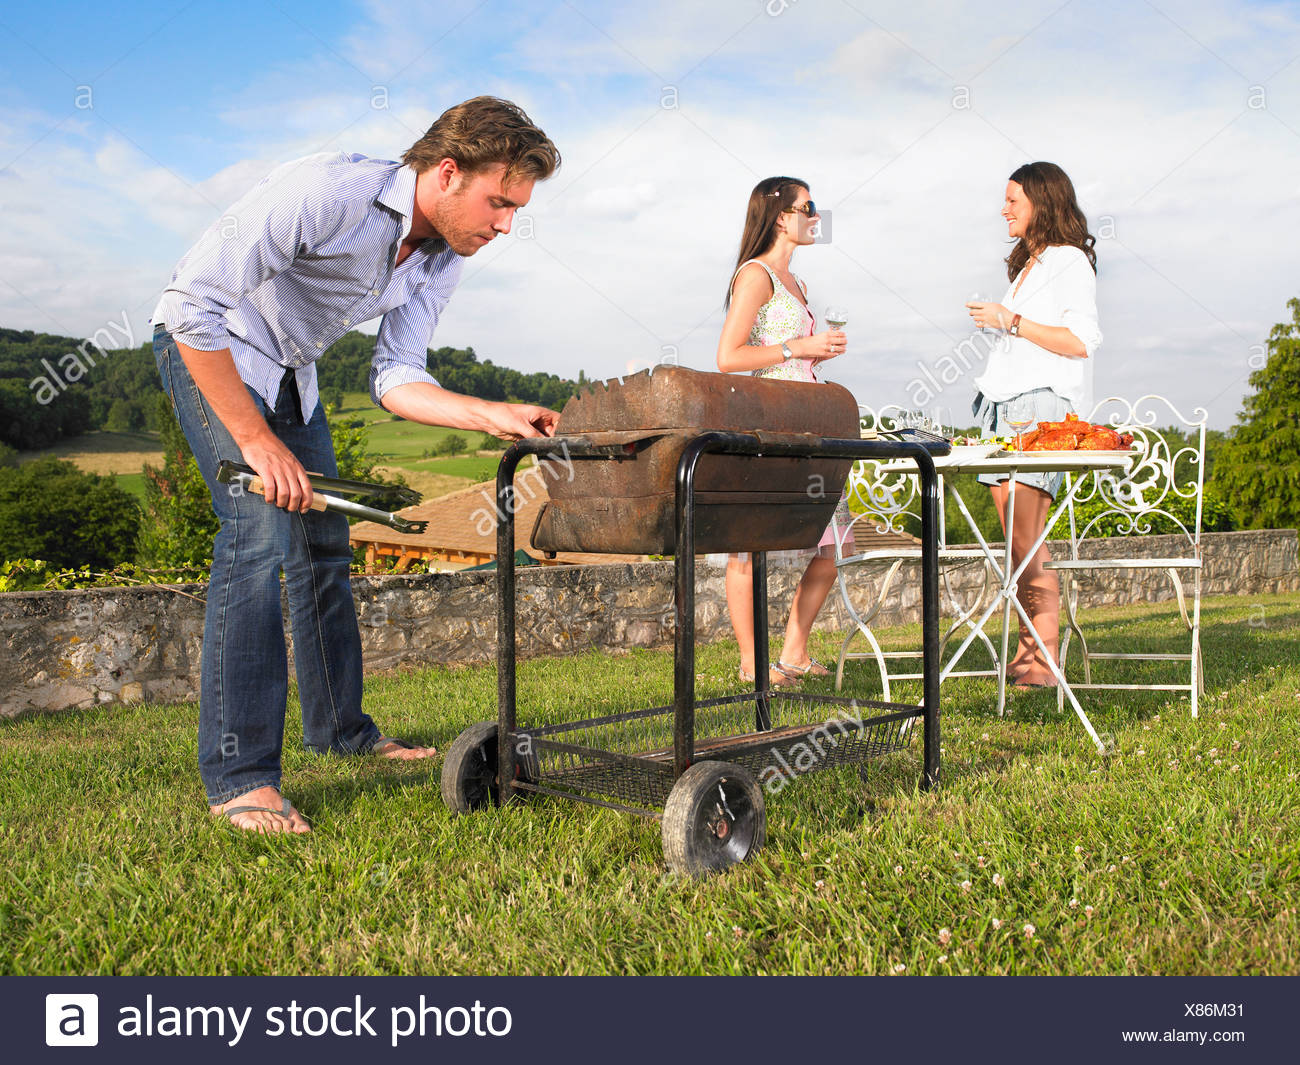 man tending barbecue - Stock Image